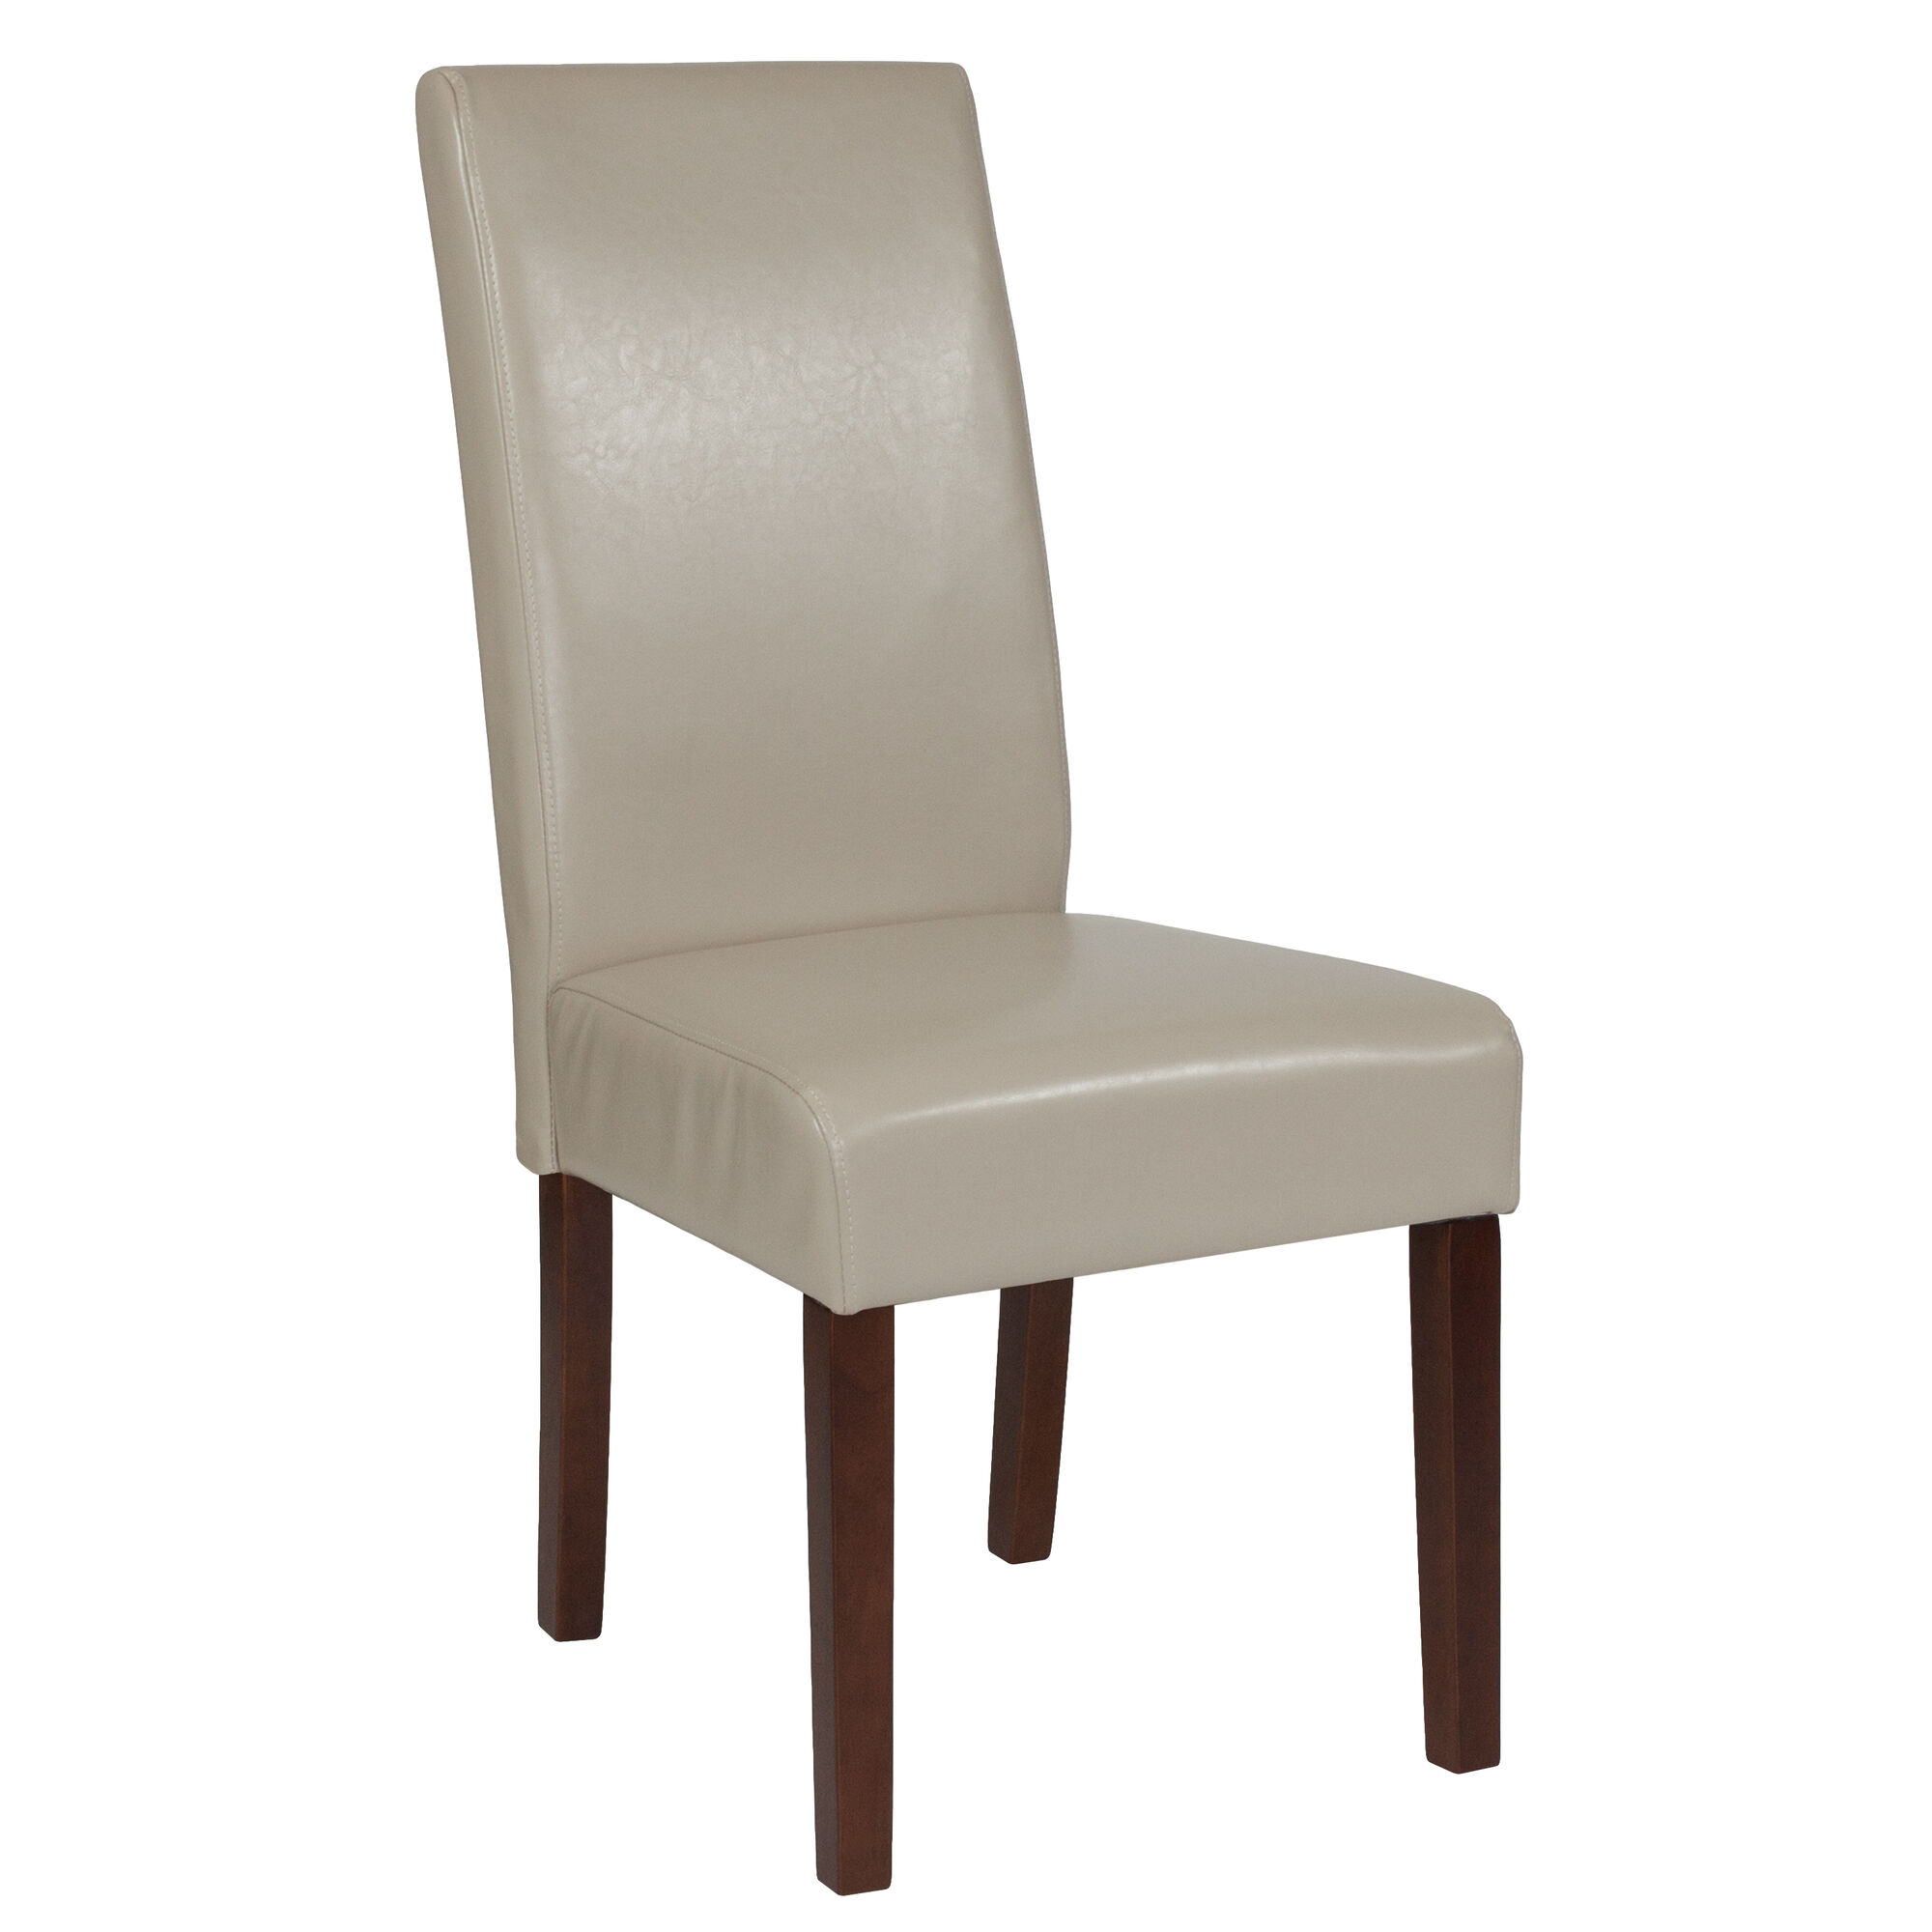 Remarkable Greenwich Series Beige Leather Parsons Chair Creativecarmelina Interior Chair Design Creativecarmelinacom